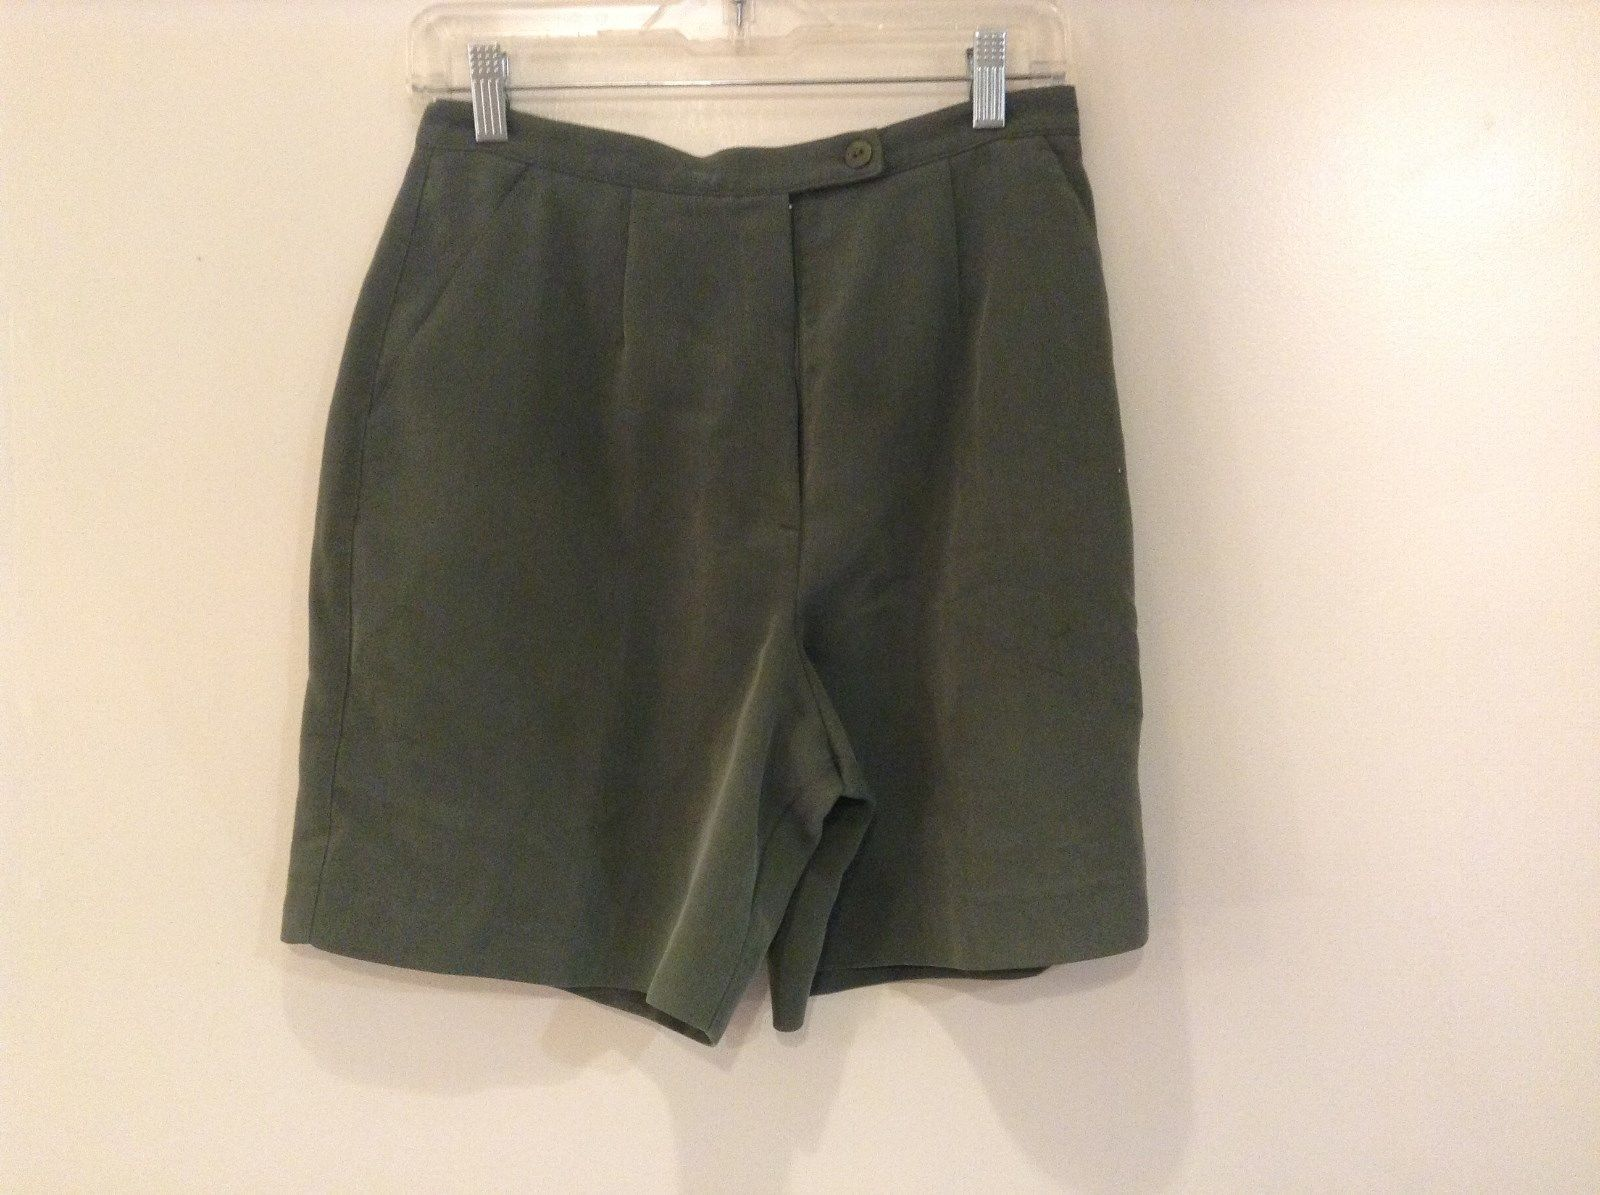 Dark Green Tail Casual Shorts Size 6 Button and Zipper Closure Two Front Pockets